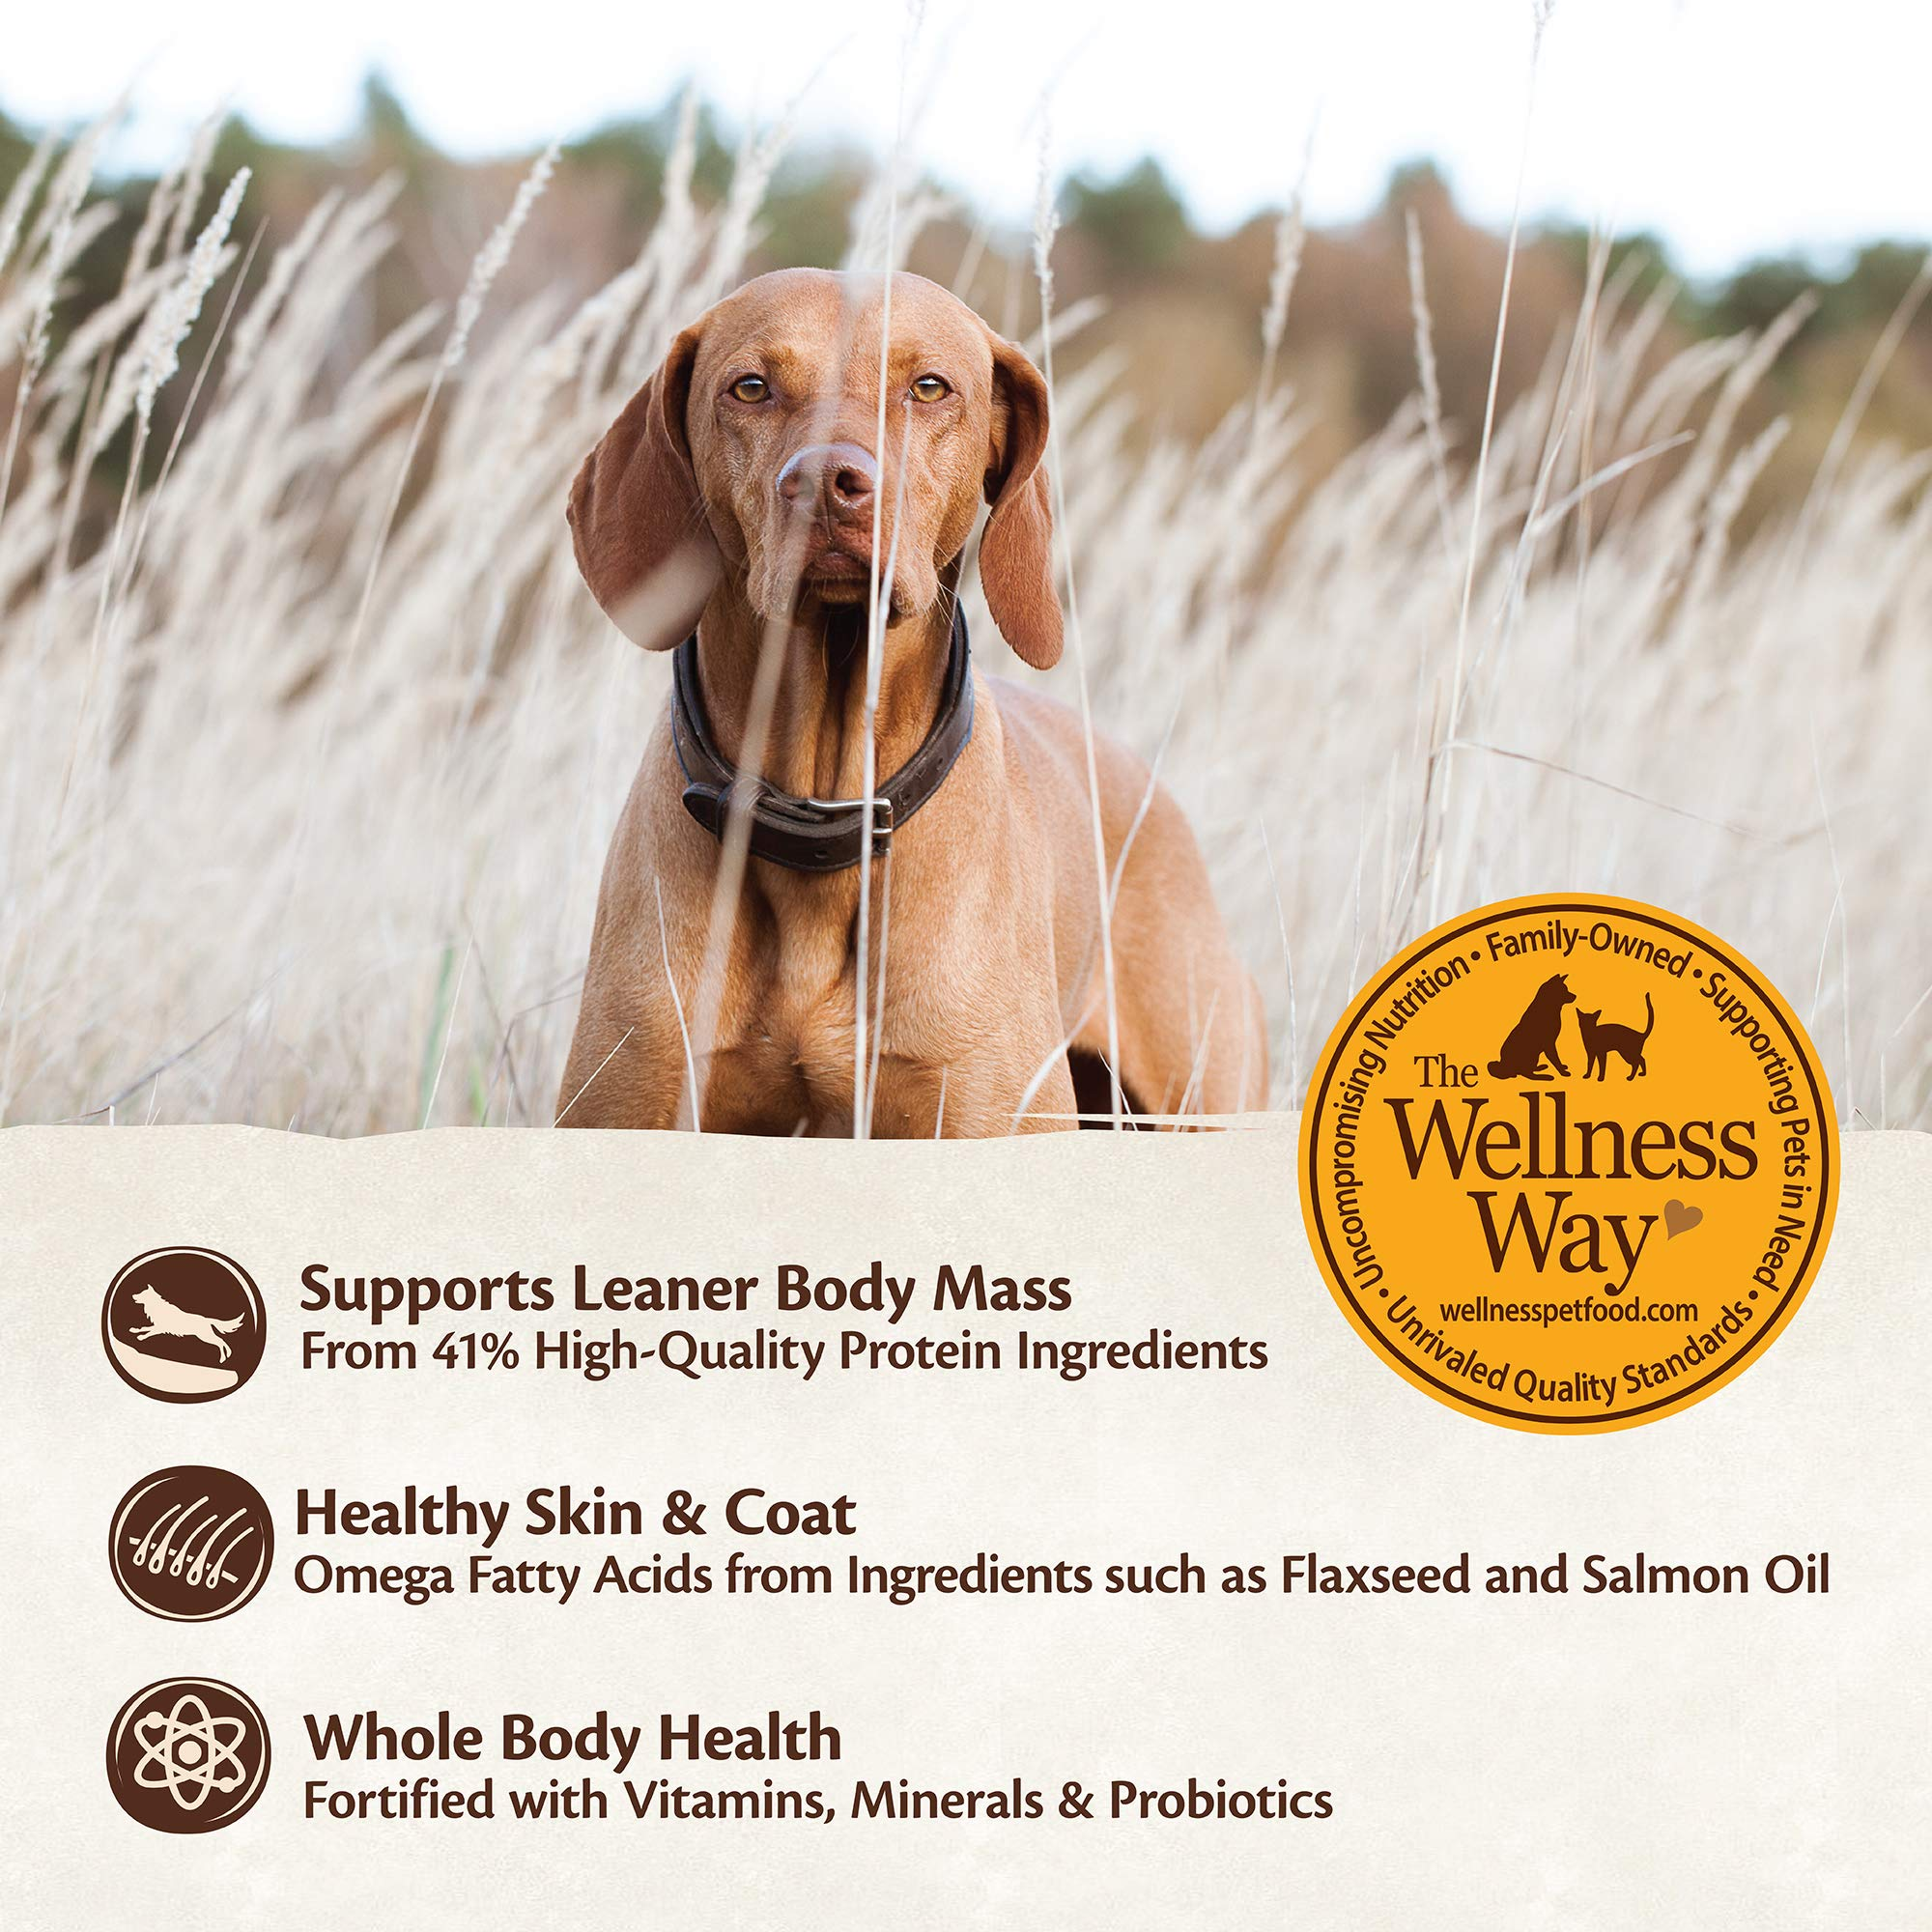 Wellness Core Natural Grain-Free Dry Dog Food, Ocean Whitefish, Herring & Salmon, 26-Pound Bag by WELLNESS CORE (Image #5)